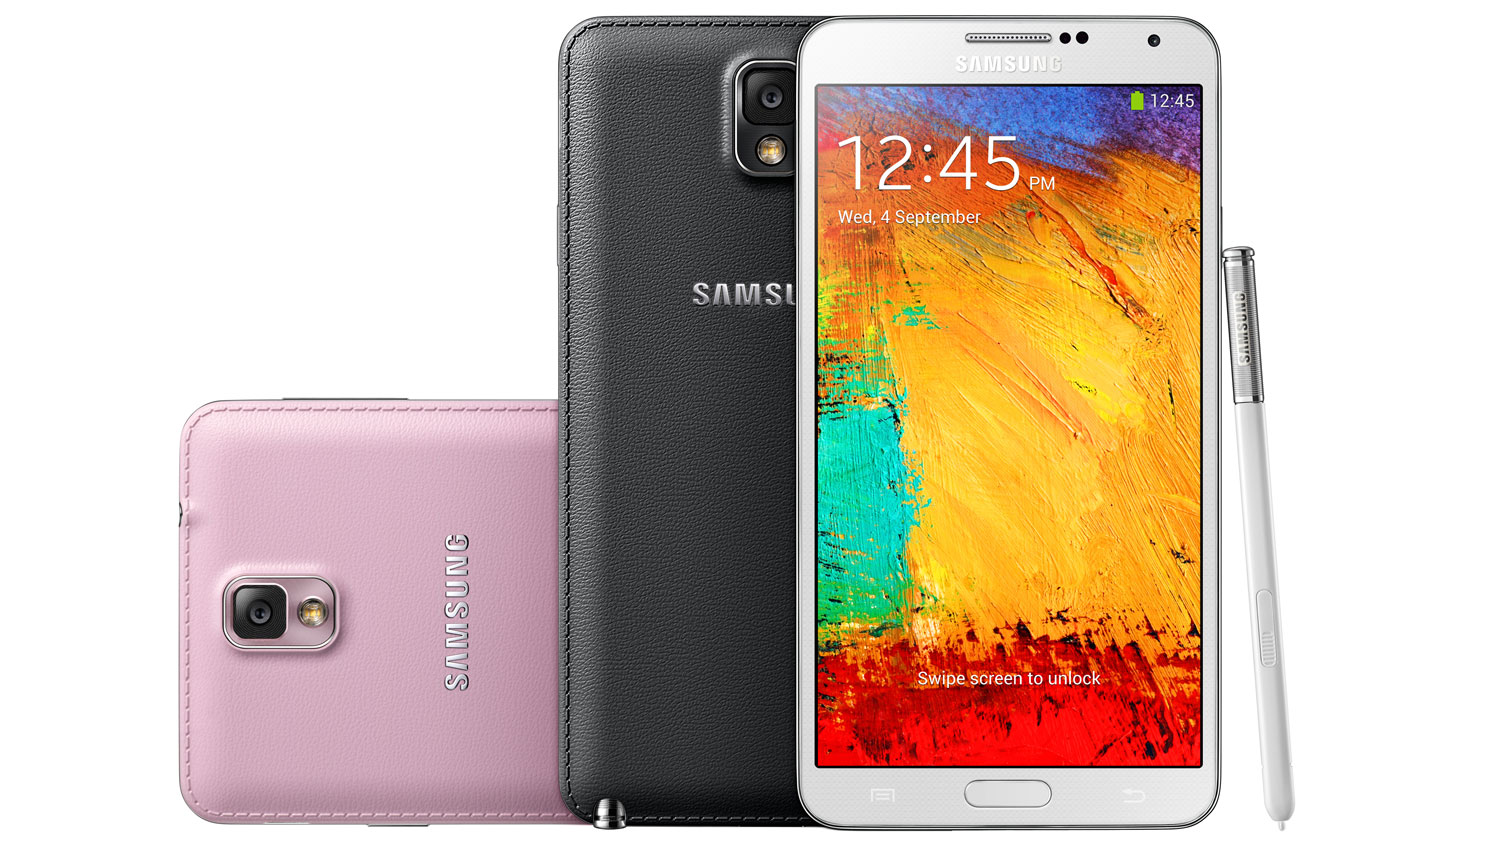 How to use scrapbook on galaxy note 3 - How To Use Scrapbook On Galaxy Note 3 42